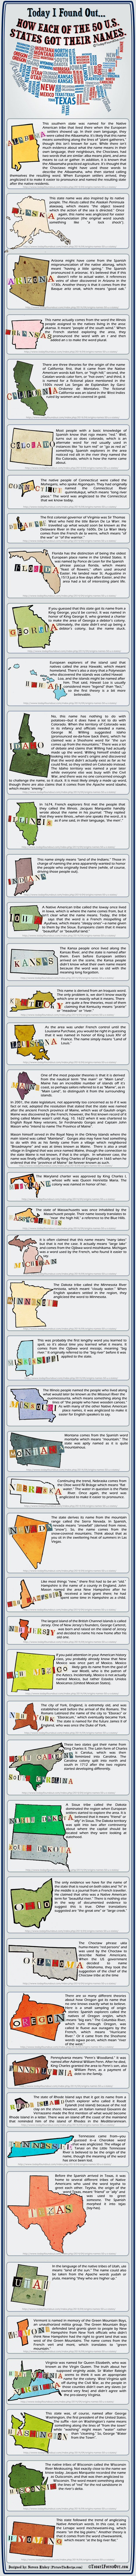 best 25 the states of america ideas on pinterest usa facts